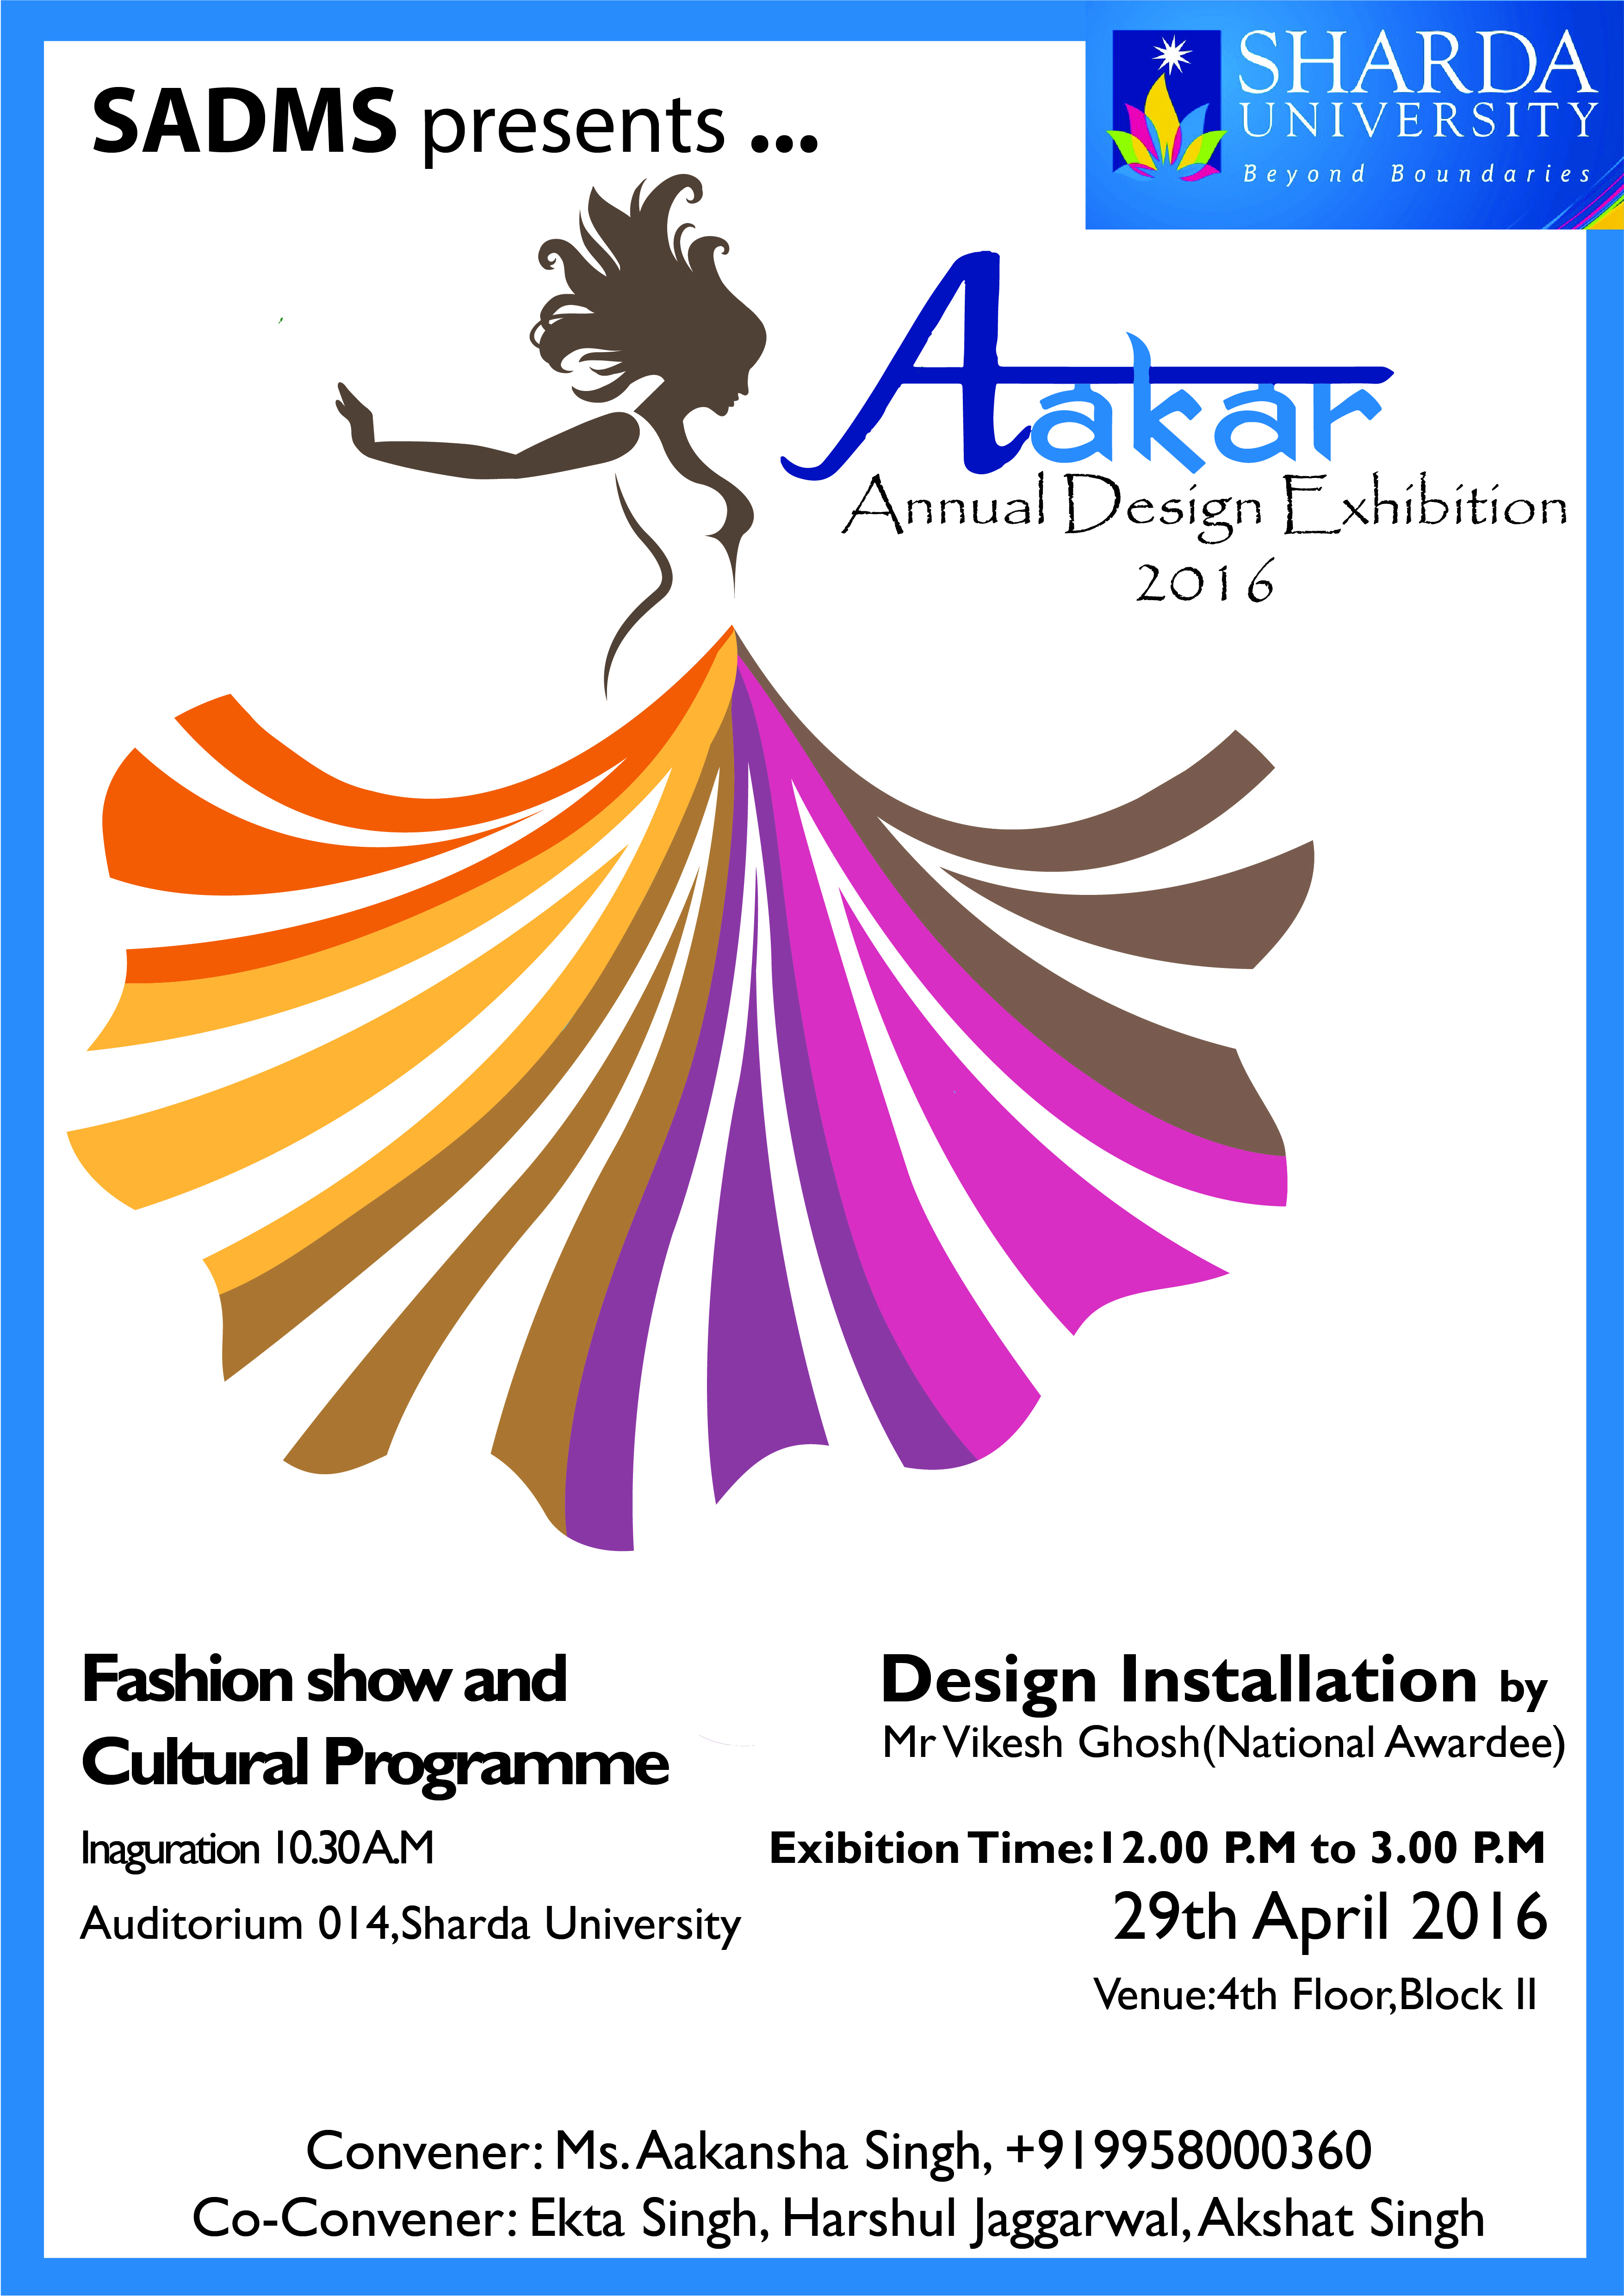 Aakar Annual Design Exhibition By Fashion Design Students Of Sadms On 29th April 16 Sharda University Event Calander